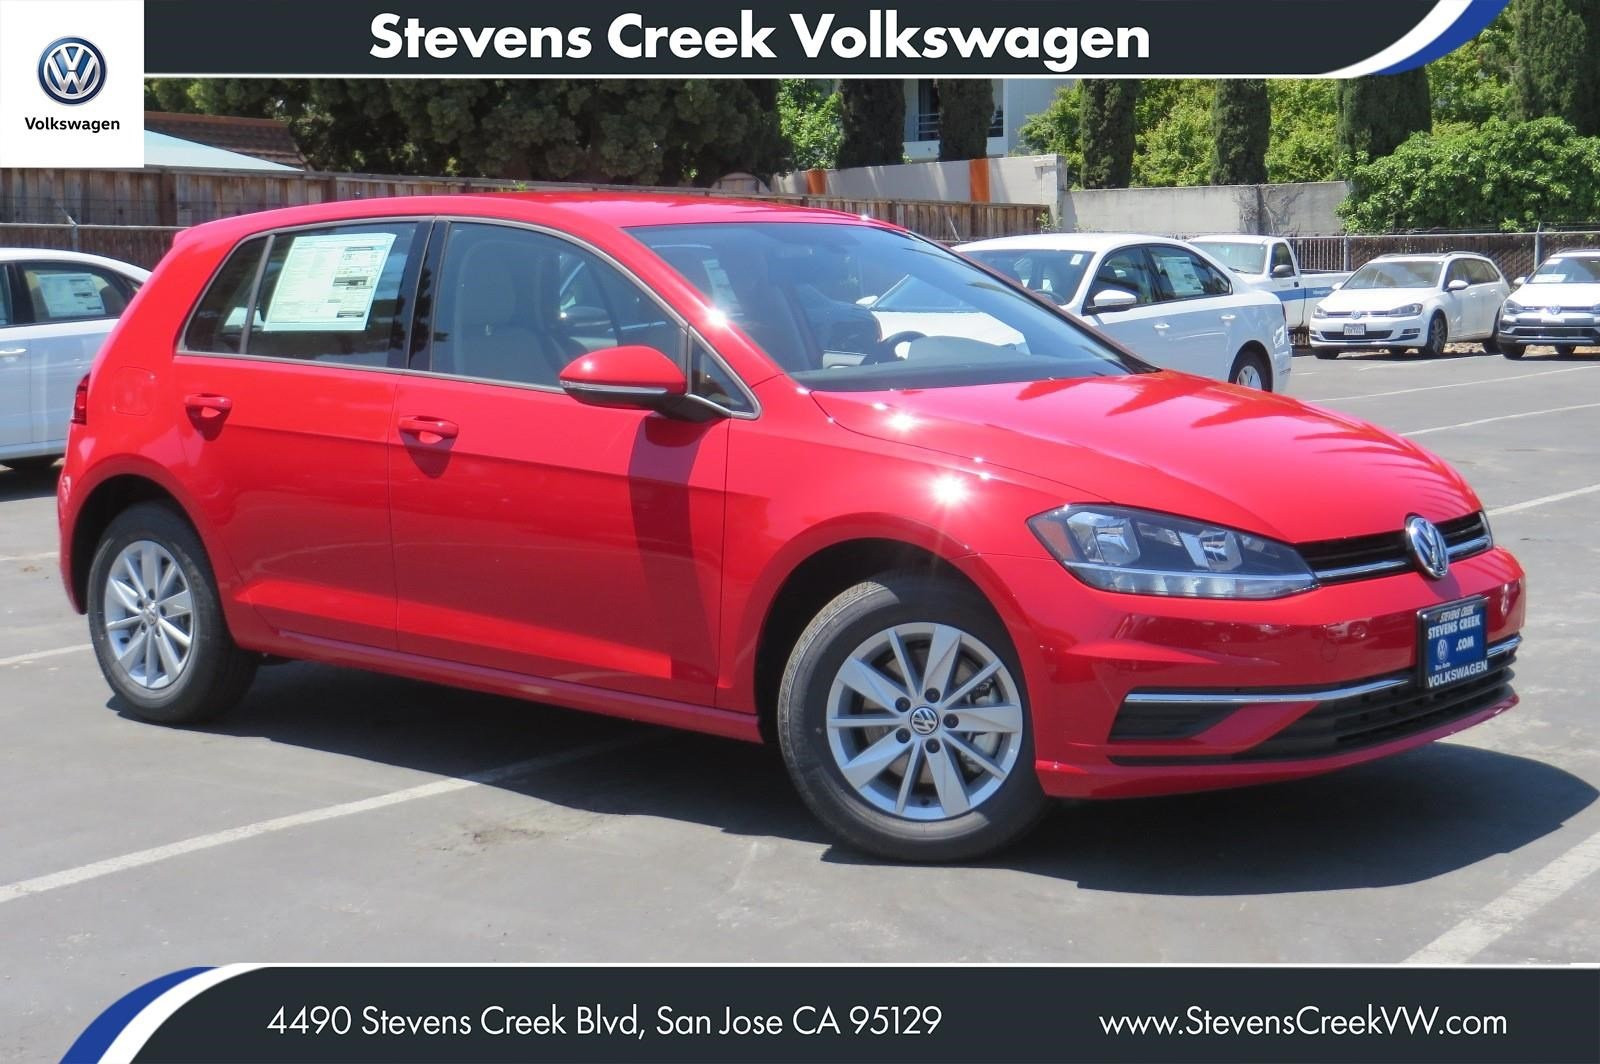 New 2018 Volkswagen Golf S FWD Hatchback VIN# JM265873 MSRP $23,180